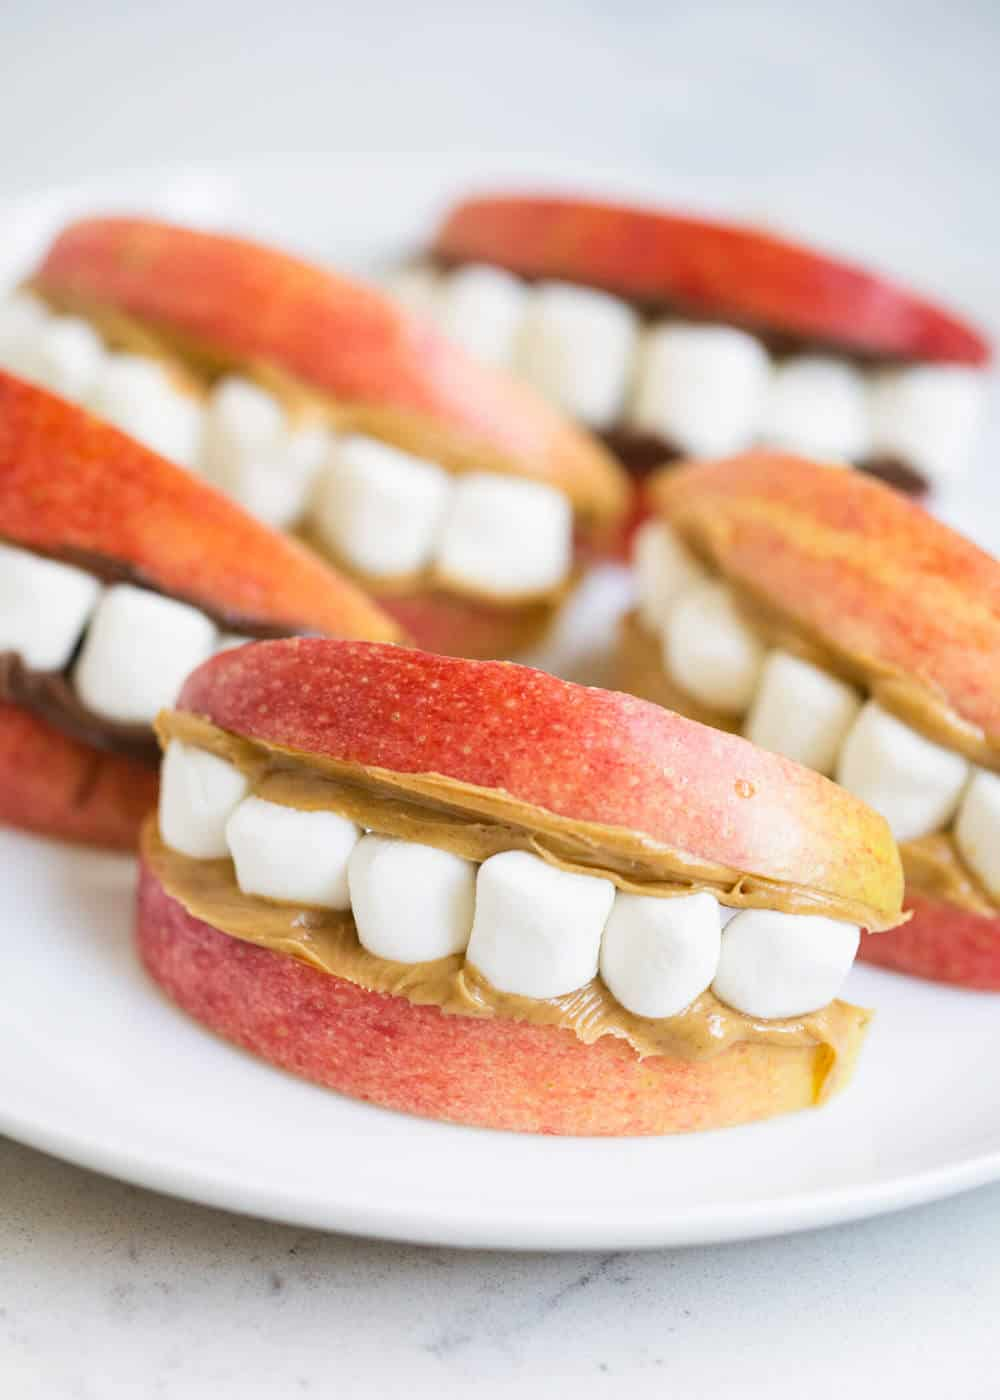 monster teeth made with apple slices